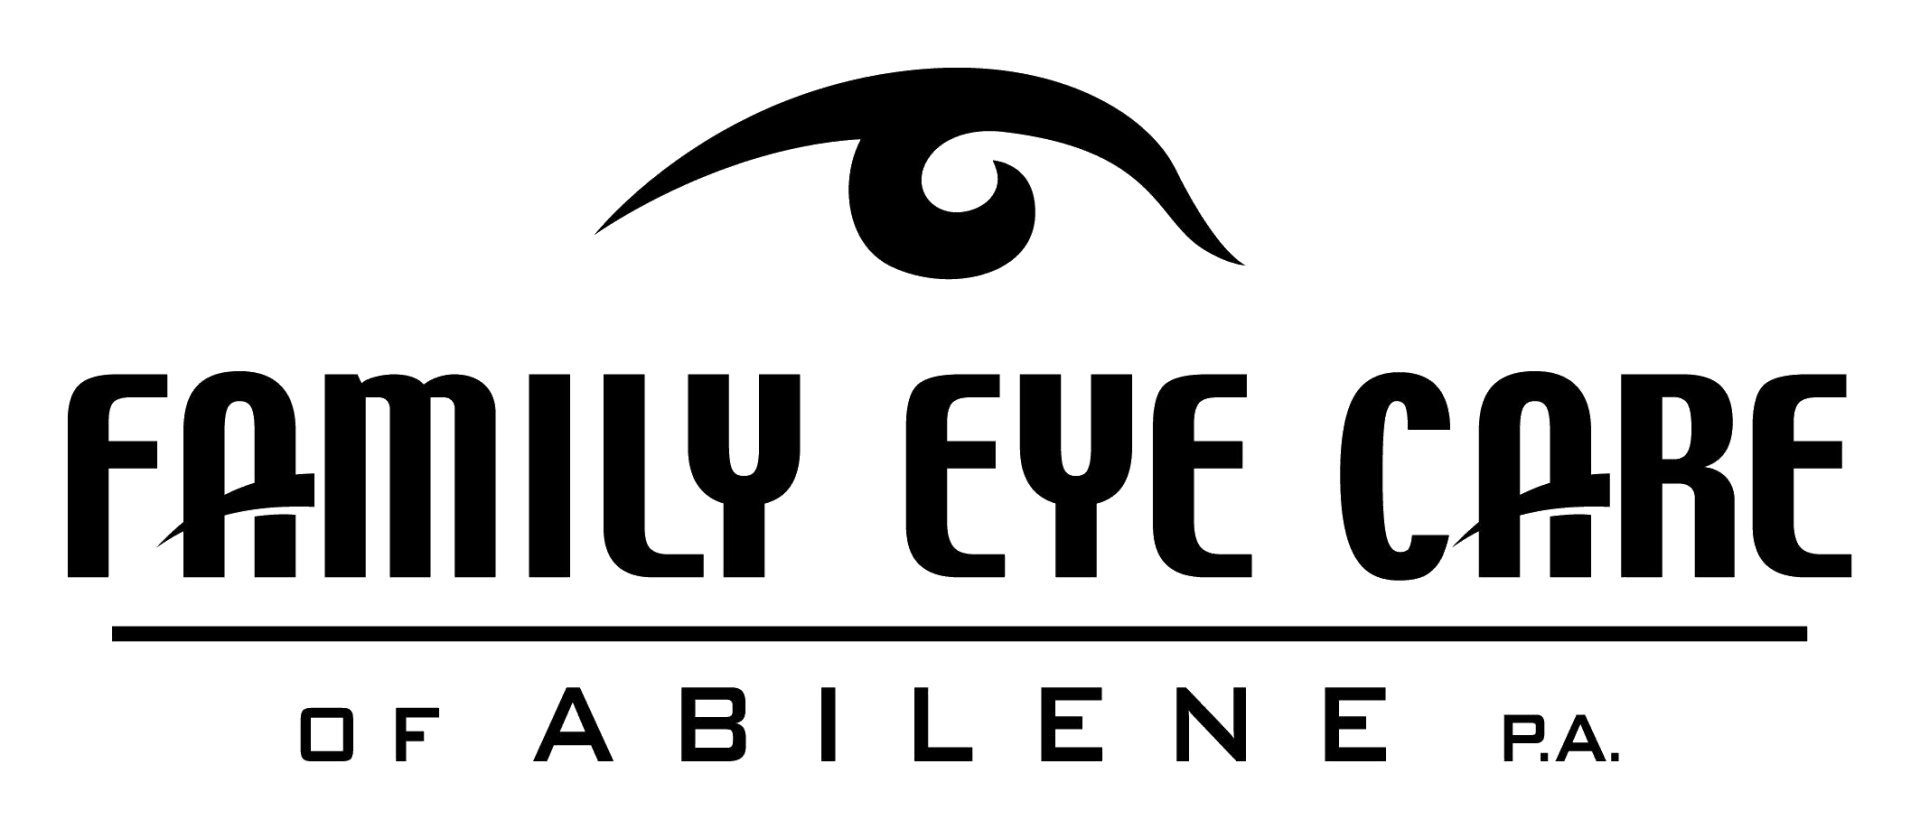 Family-Eye-Care-of-Abilene-small-w1920.png